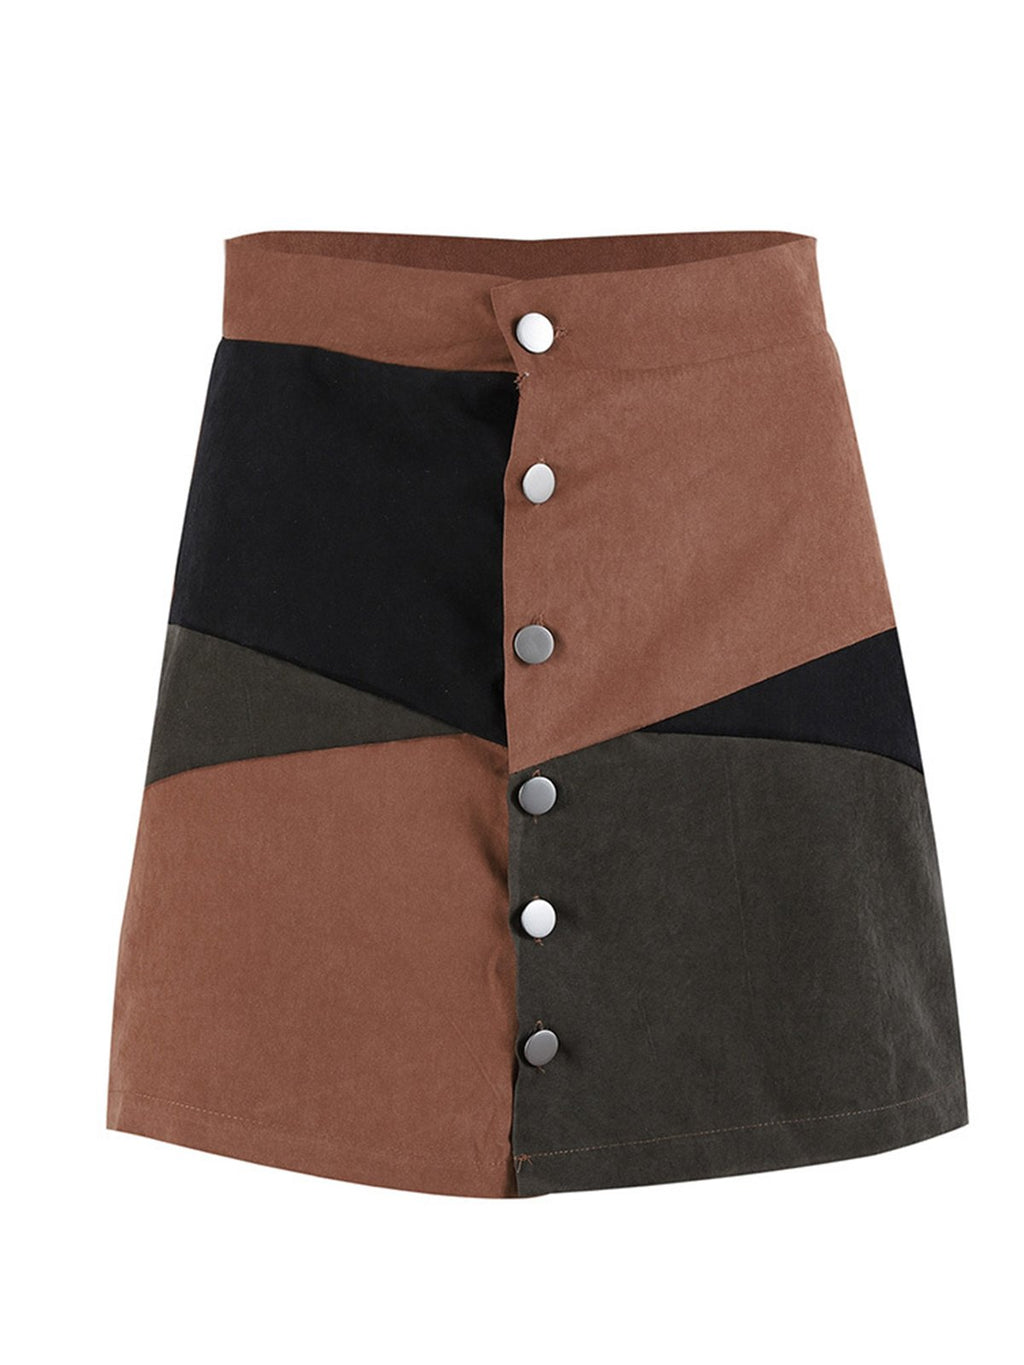 Vintage Style Women Skirts Suede Color Block Mini A-Line Skirt